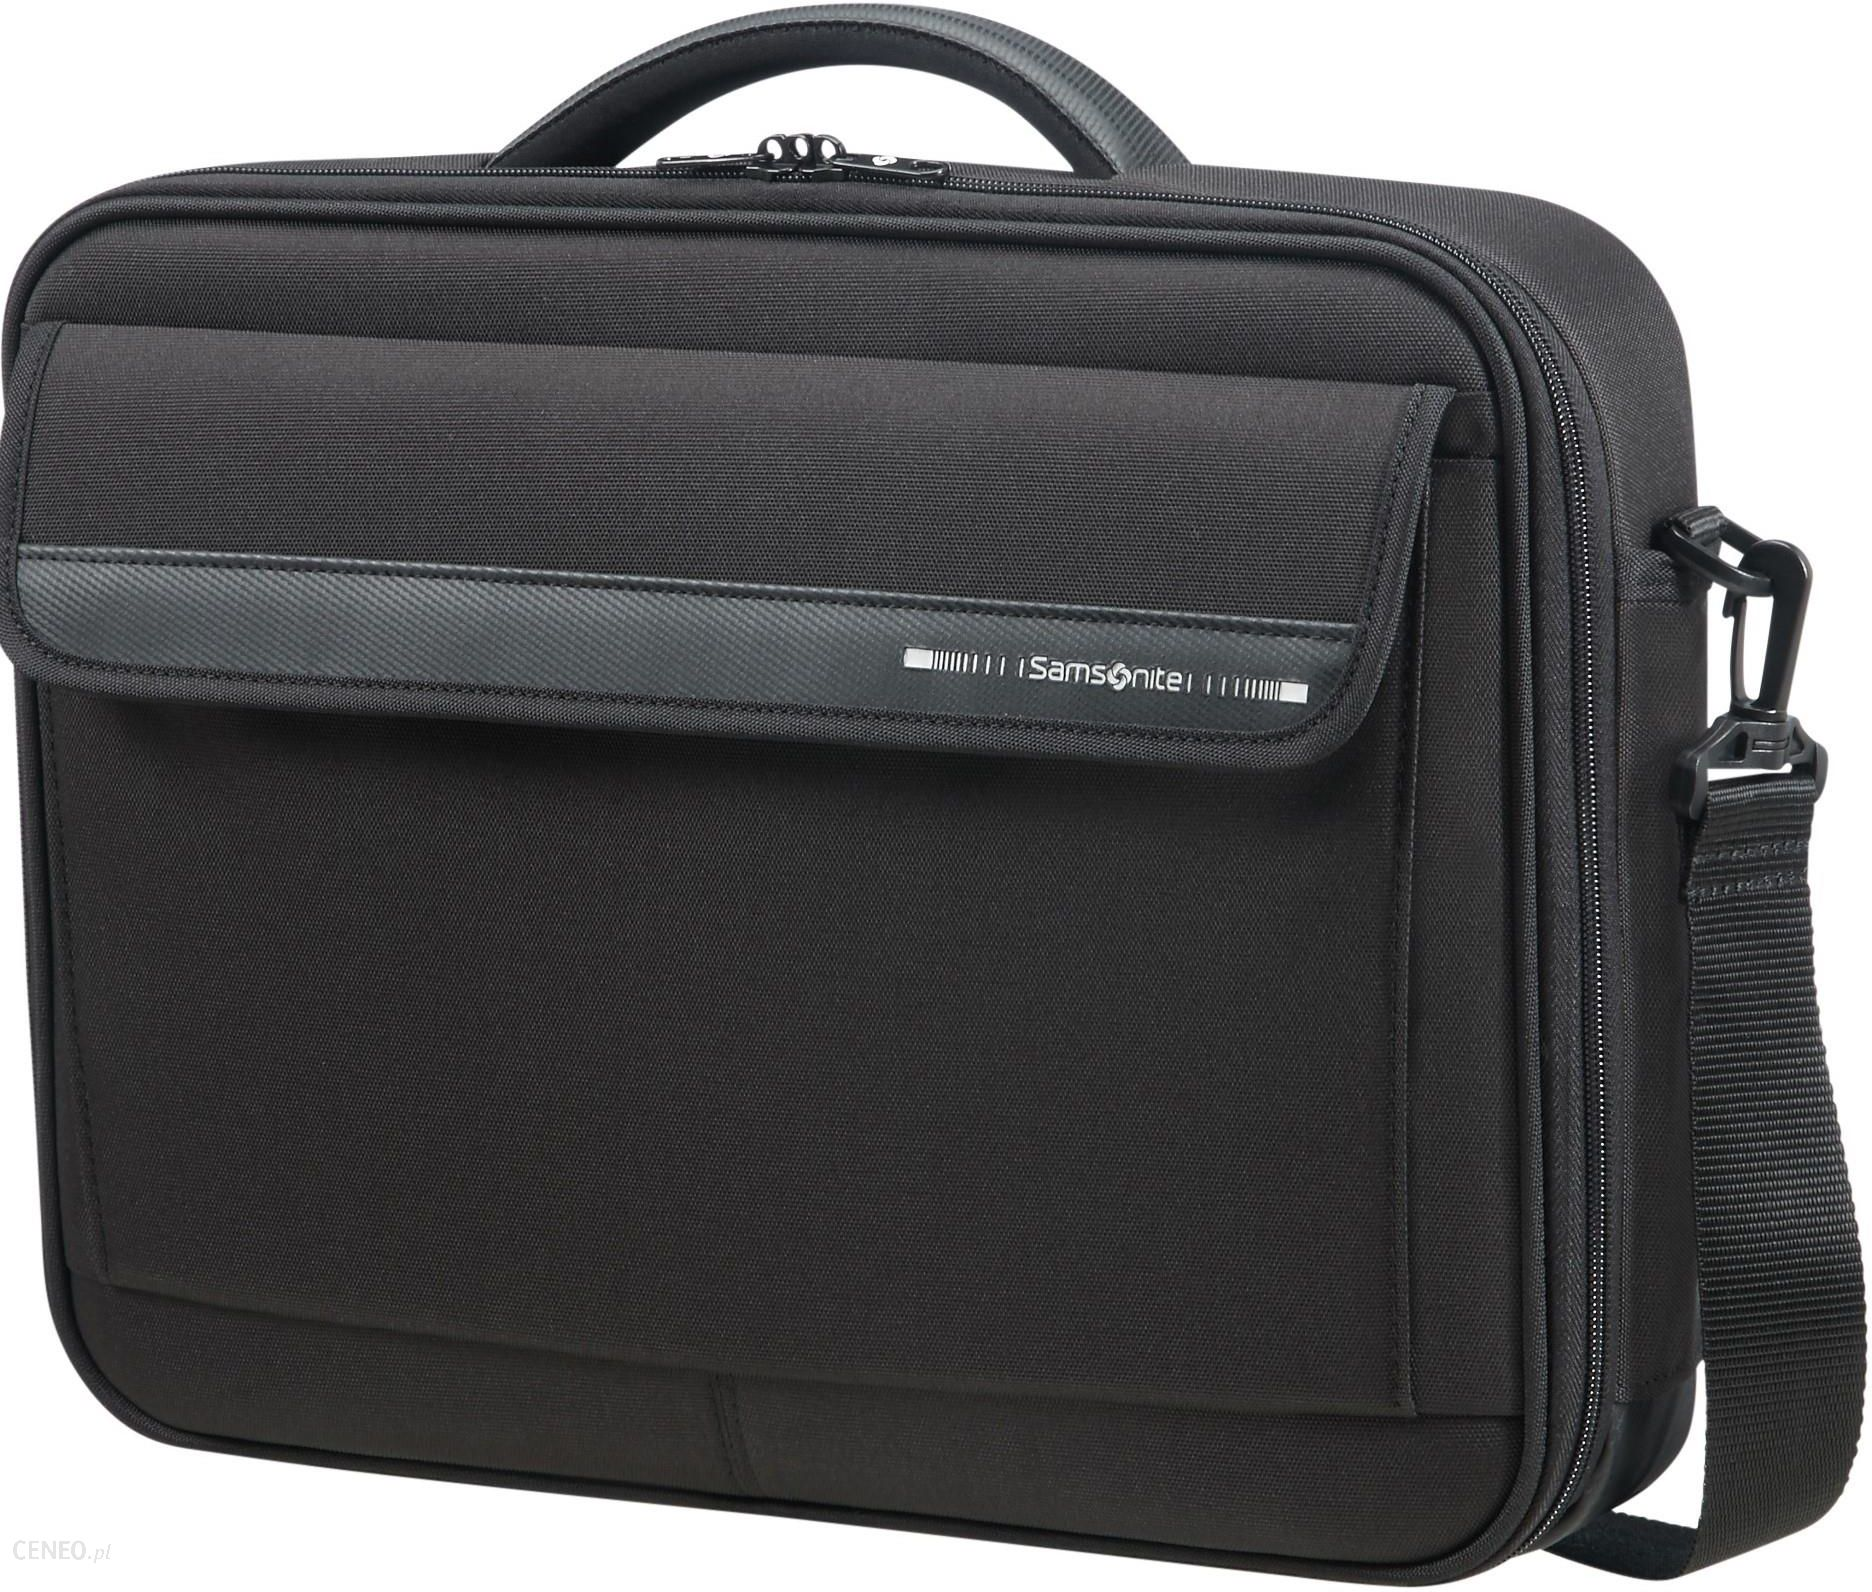 e12e65110721b Torba na laptopa Samsonite Office Case 15,6 (103595) - Opinie i ceny ...